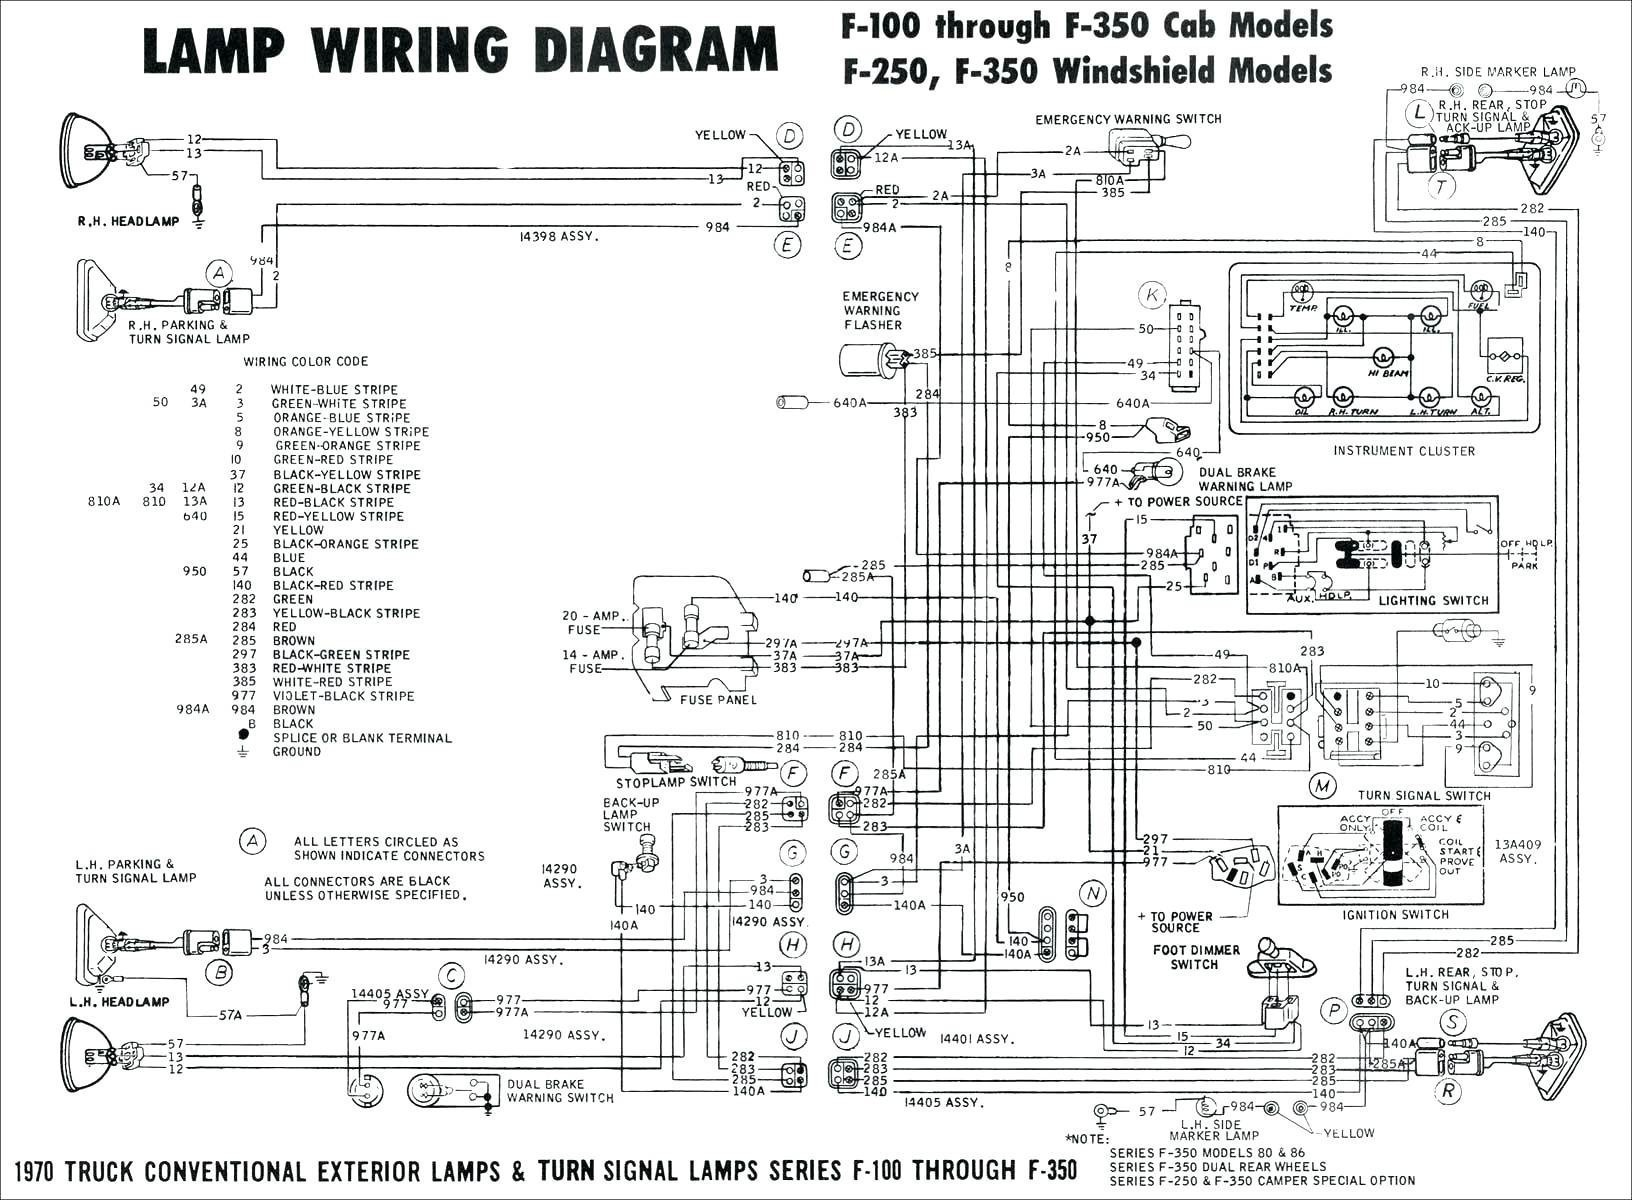 koolertron backup camera wiring diagram wiring library Koolertron Wiring Diagram koolertron wiring diagram wiring